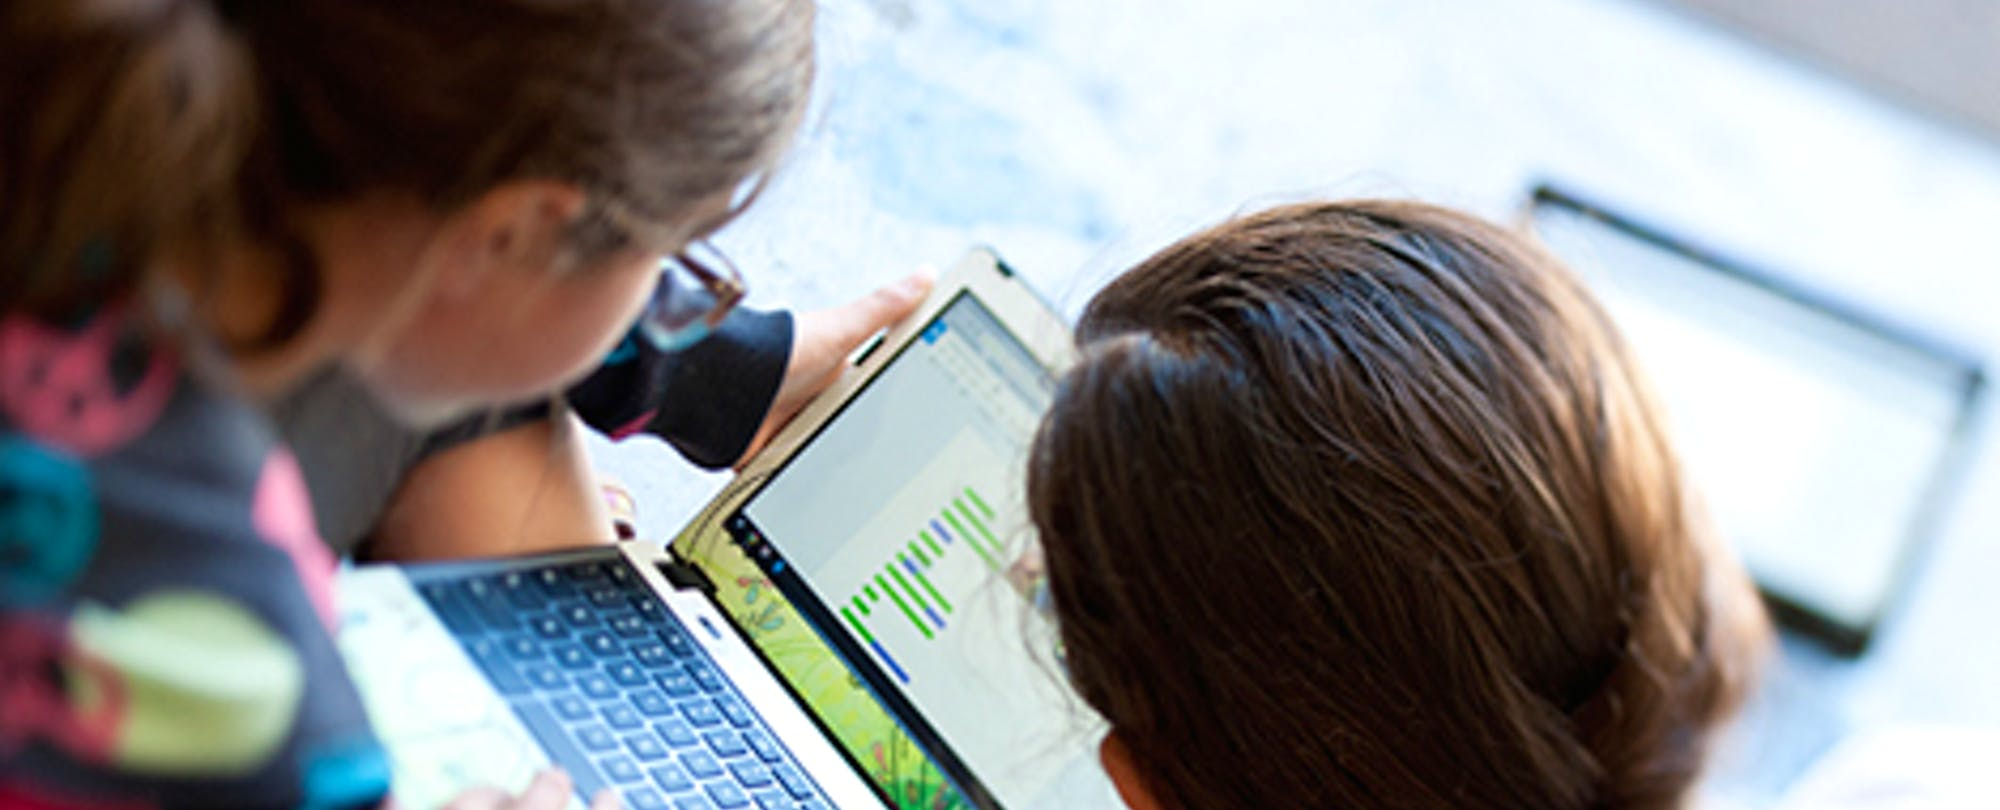 Summit Friends Facebook to Expand Personalized Learning Platform